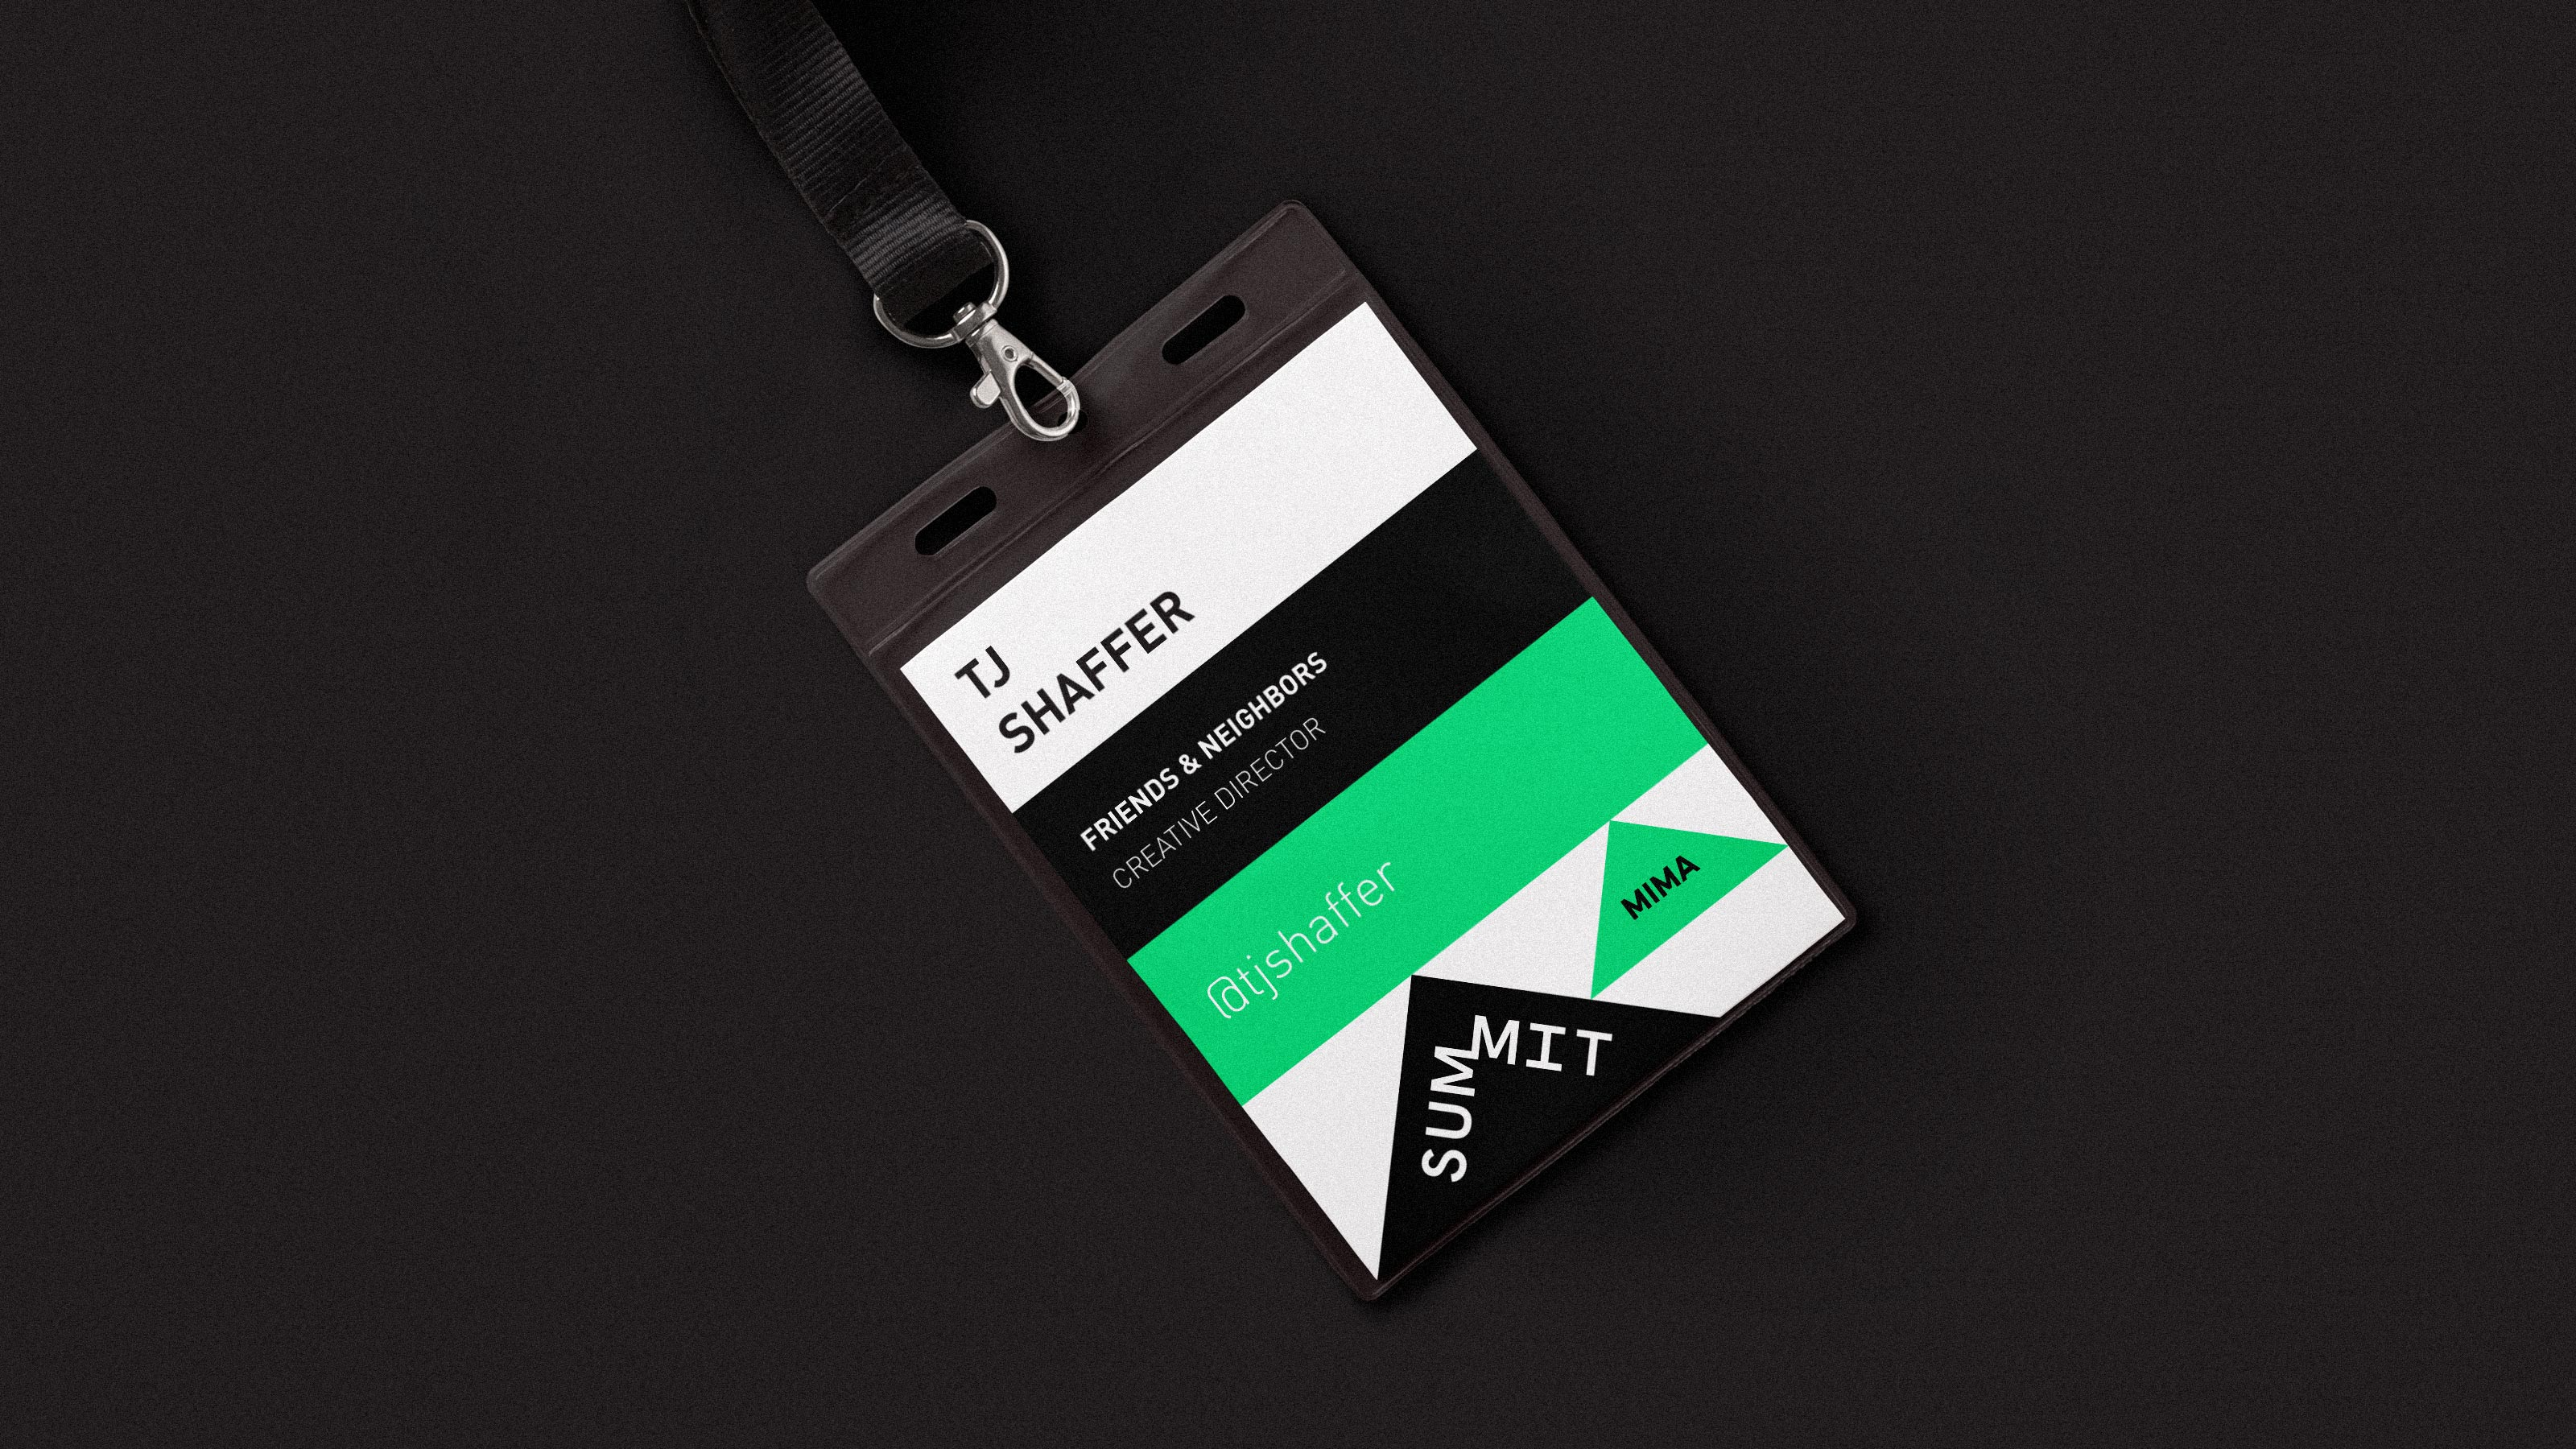 MIMA_Summit_2017_CardHolder